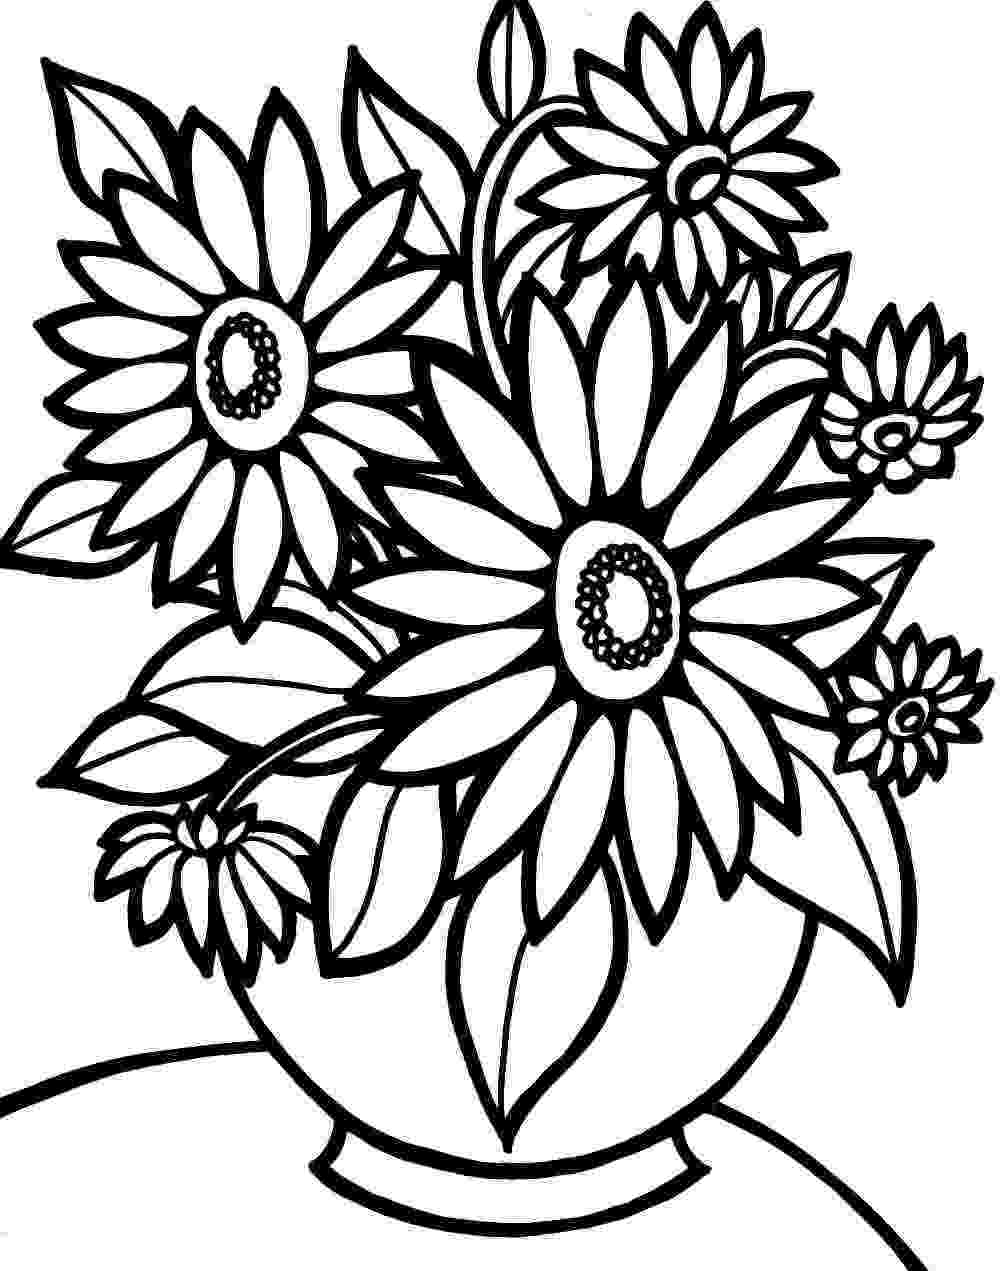 flower coloring pages for girls spring flower coloring pages to download and print for free pages coloring flower girls for